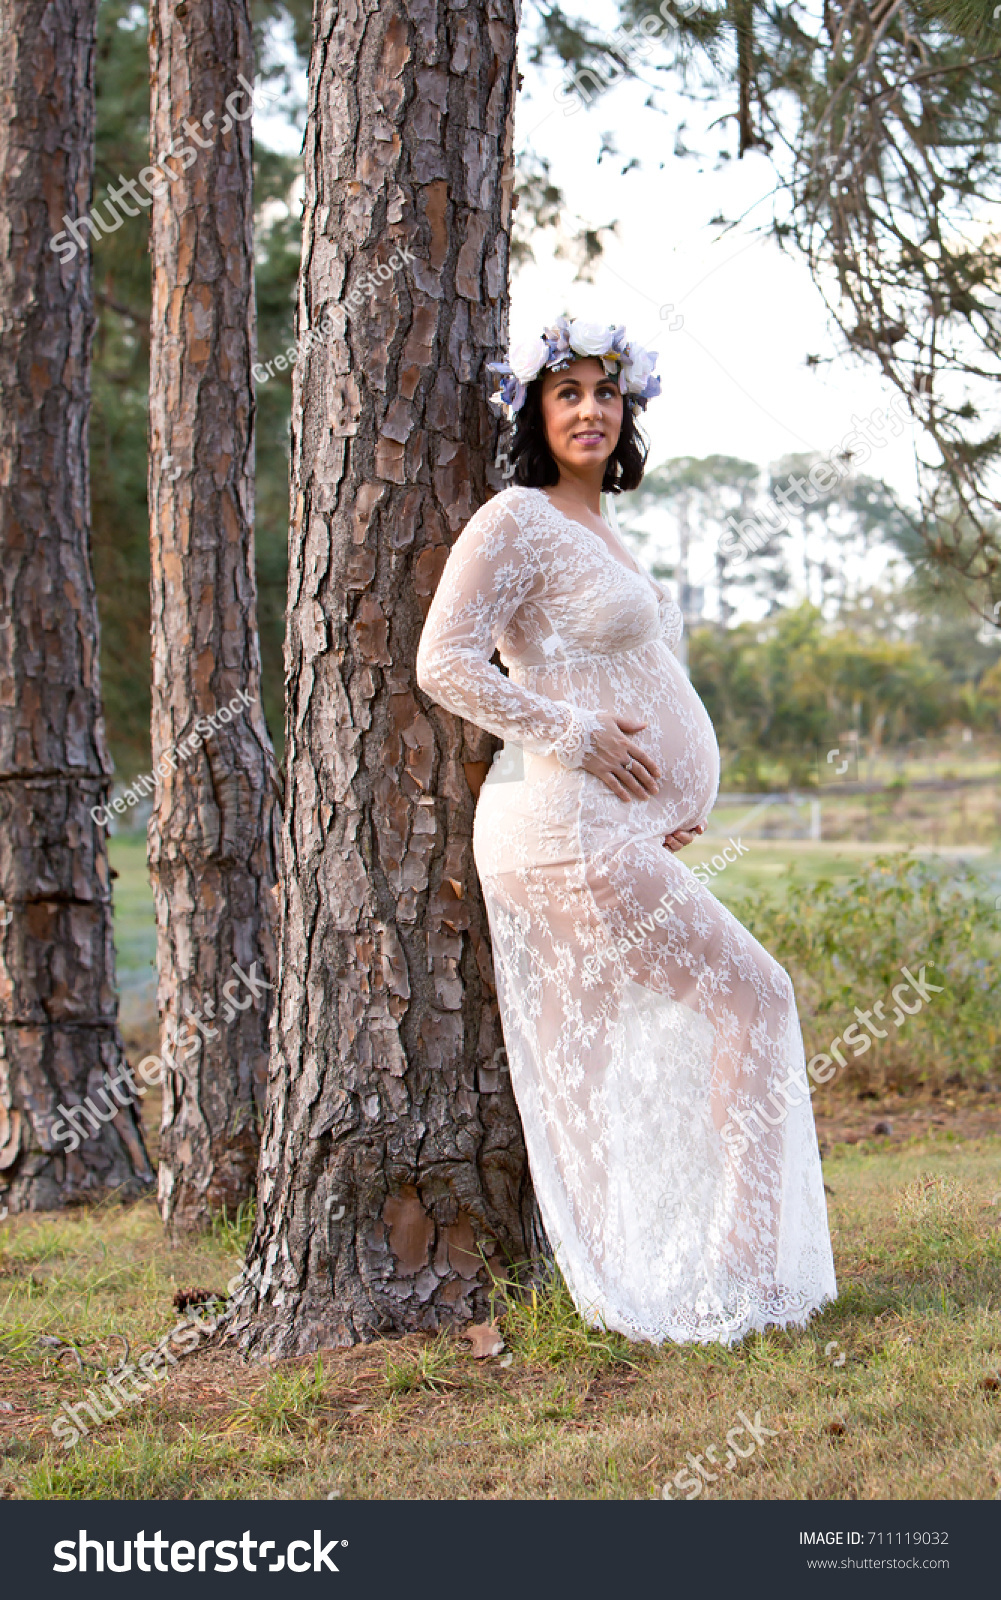 22894bb2f9ff3 Beautiful pregnant woman in sheer white lace maternity dress outdoors  leaning against large pine tree trunk